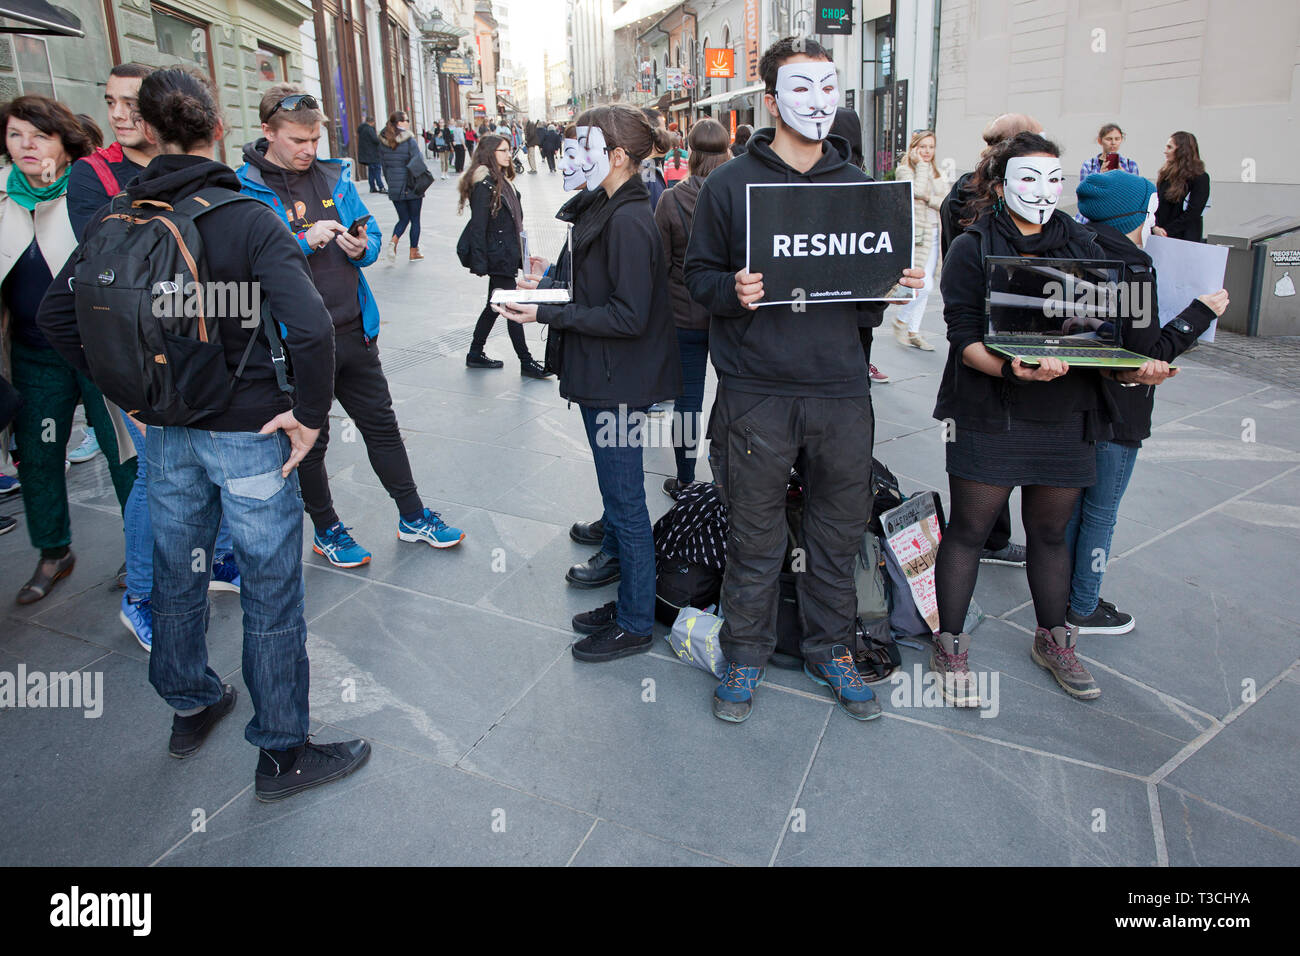 'Resnica' or 'truth' - a protesting the impact of modern, industrial farming on farmed animal - Stock Image